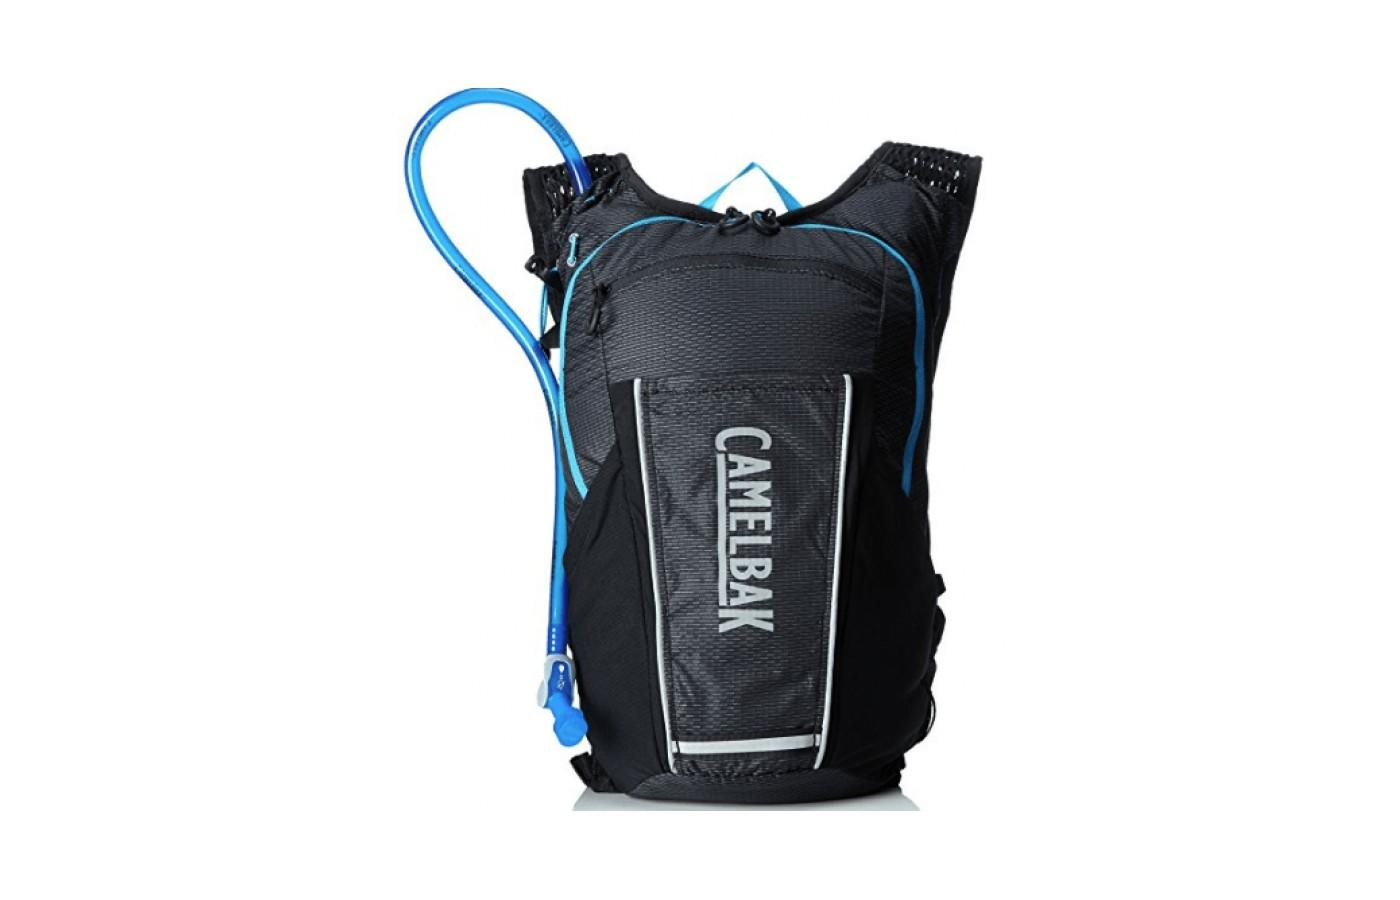 Camelbak Ultra 10 is a hydration backpack for runners.